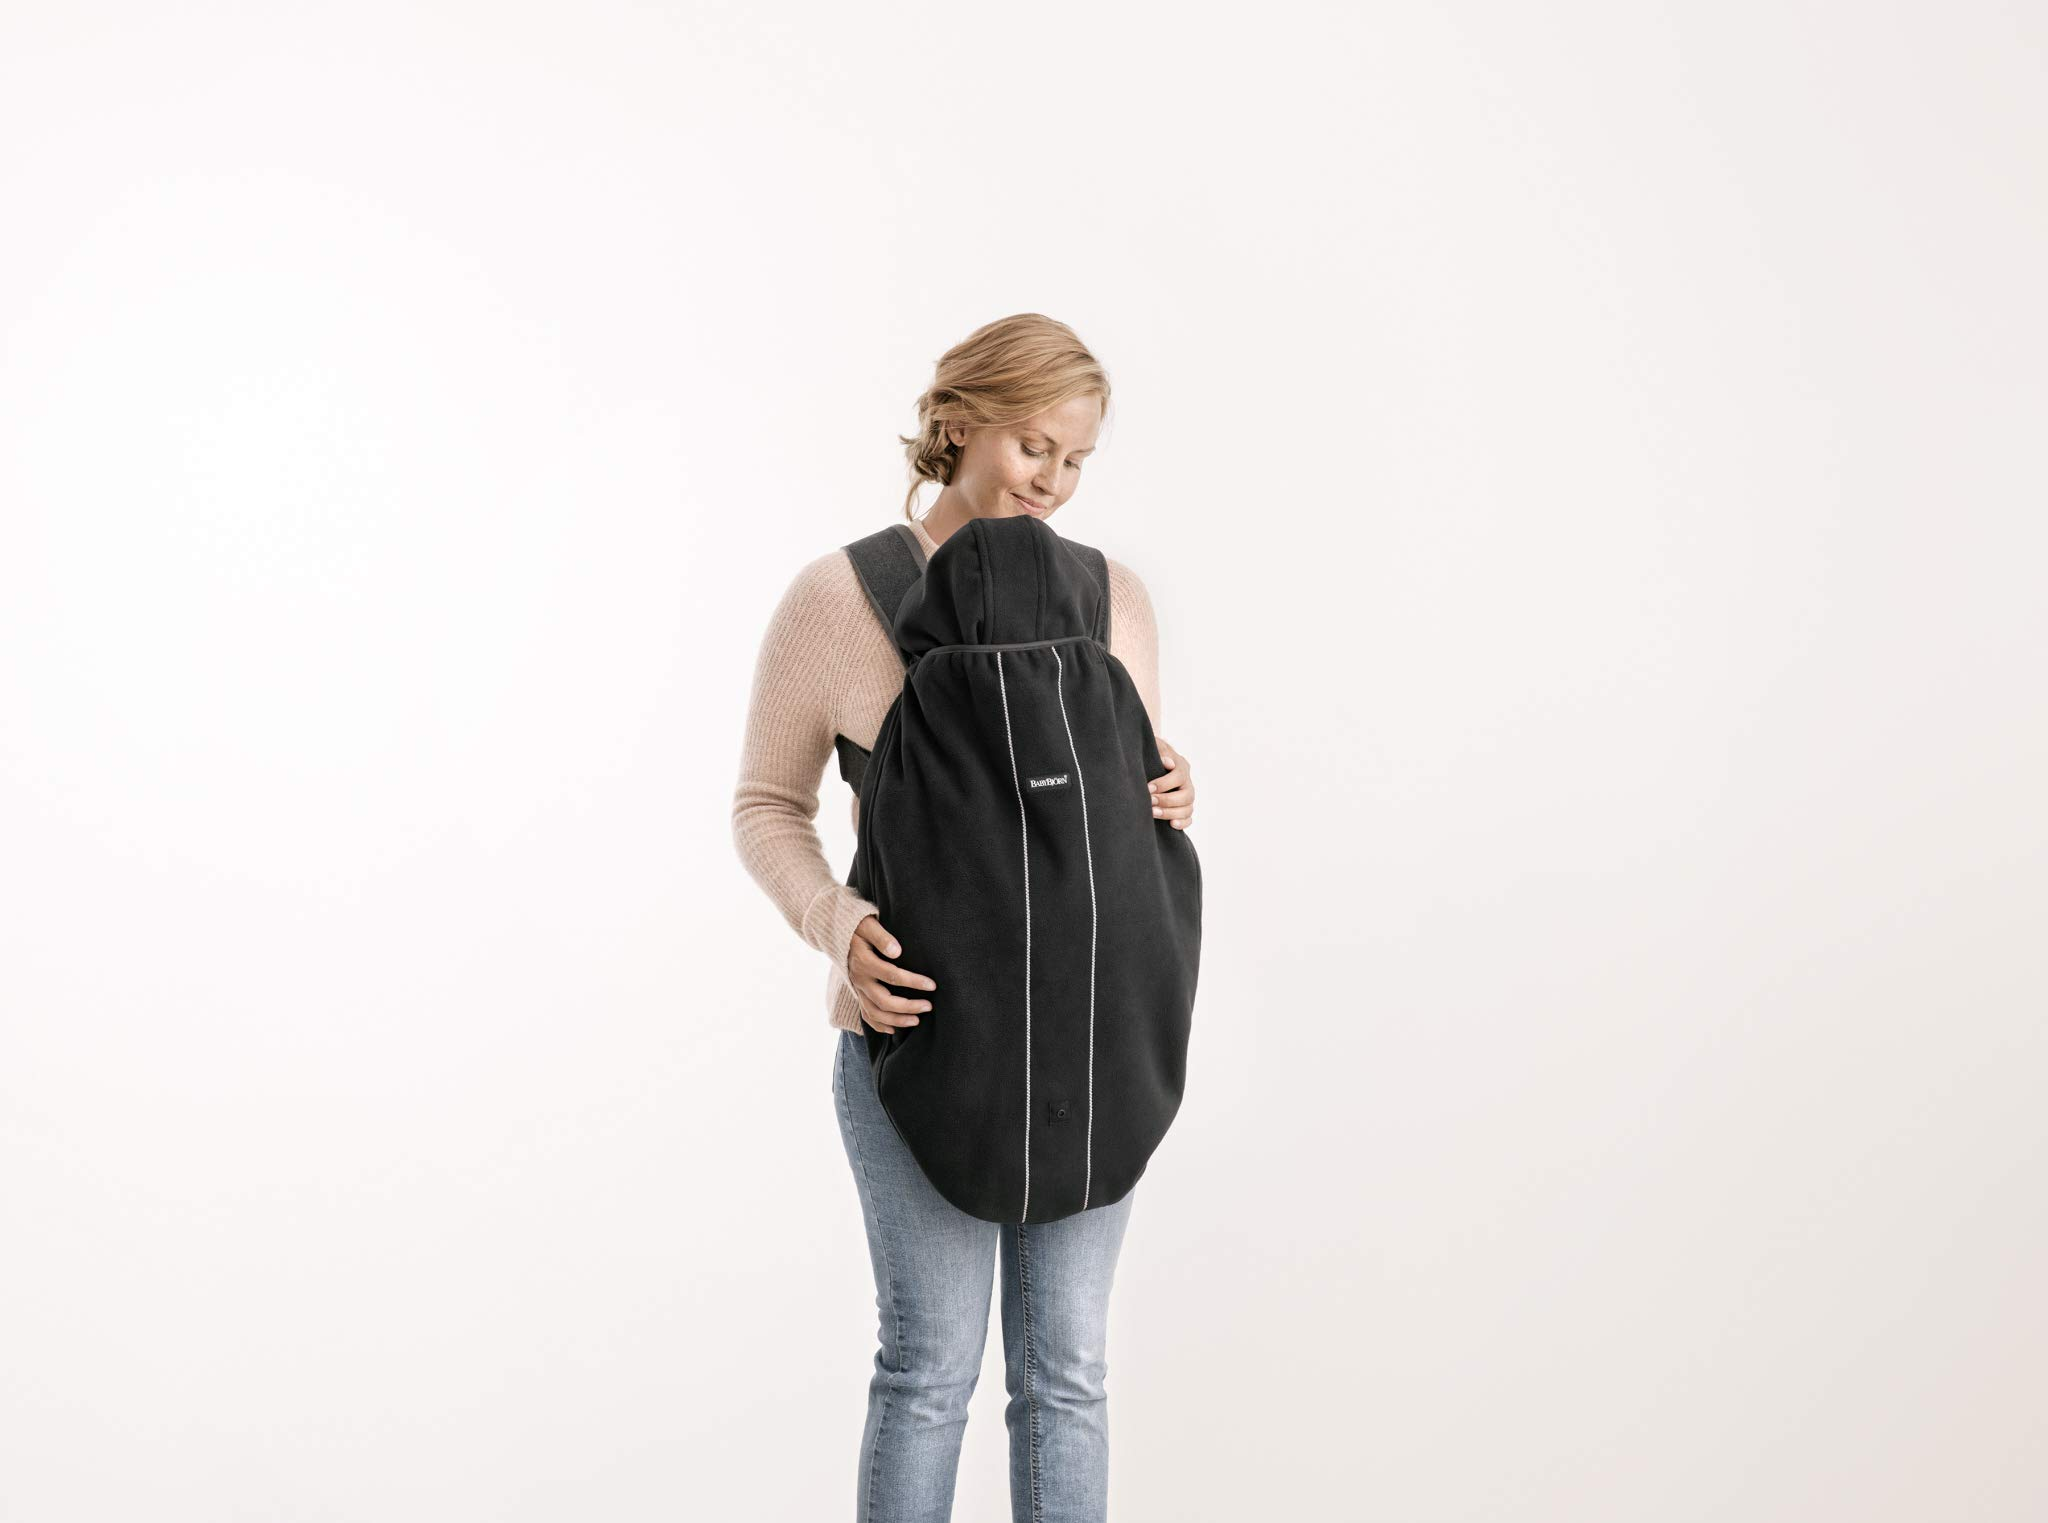 BABYBJÖRN Cover for Baby Carrier, Black, 0.3 kg Baby Bjorn Keeps your child warm and dry in the baby carrier Can be used in both facing-in and front-facing positions Detachable hood 4